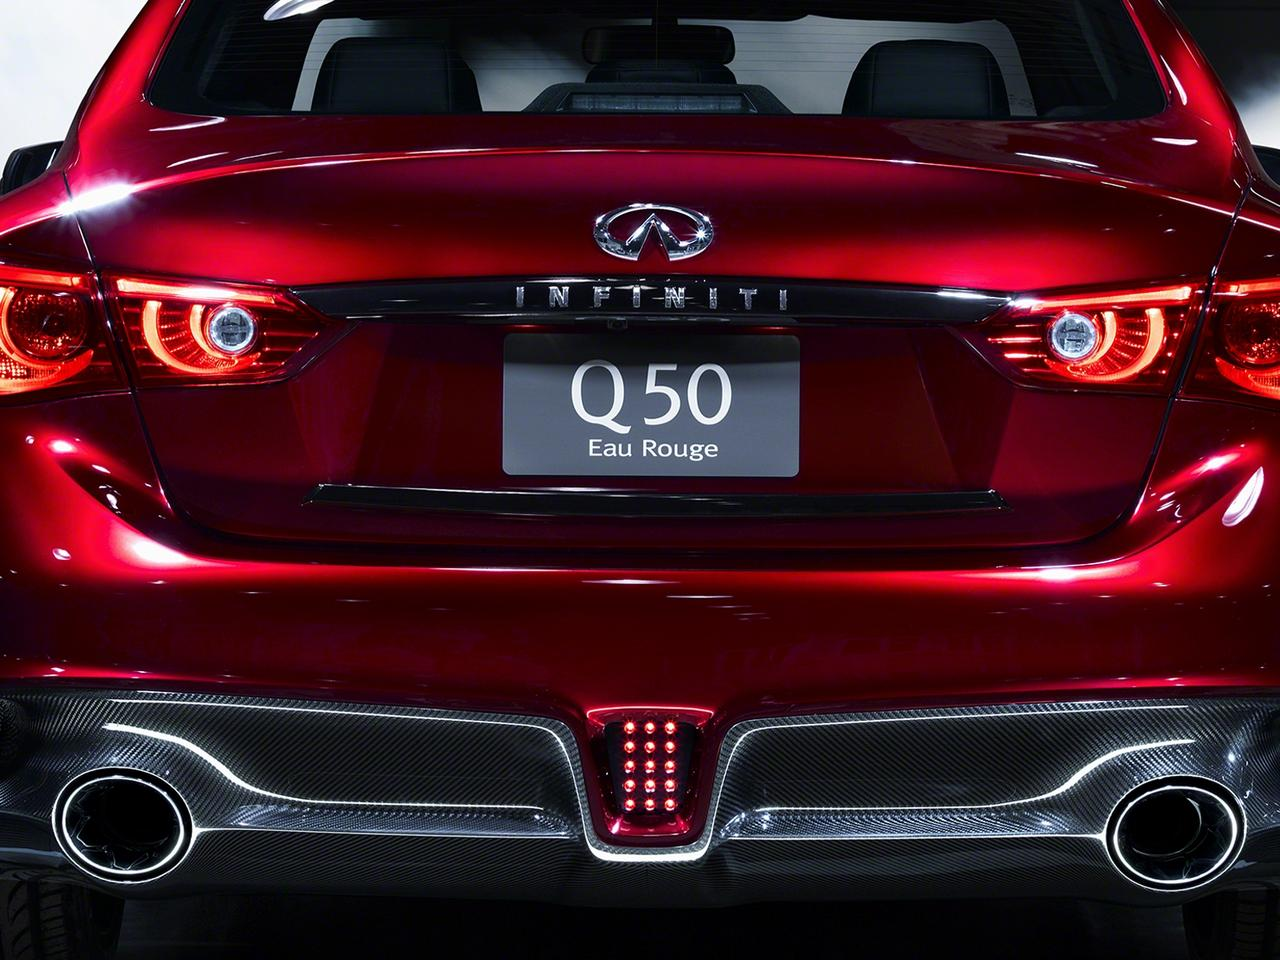 infiniti-q50-eau-rouge-model-line-naias-detroit-2014-0-100_9